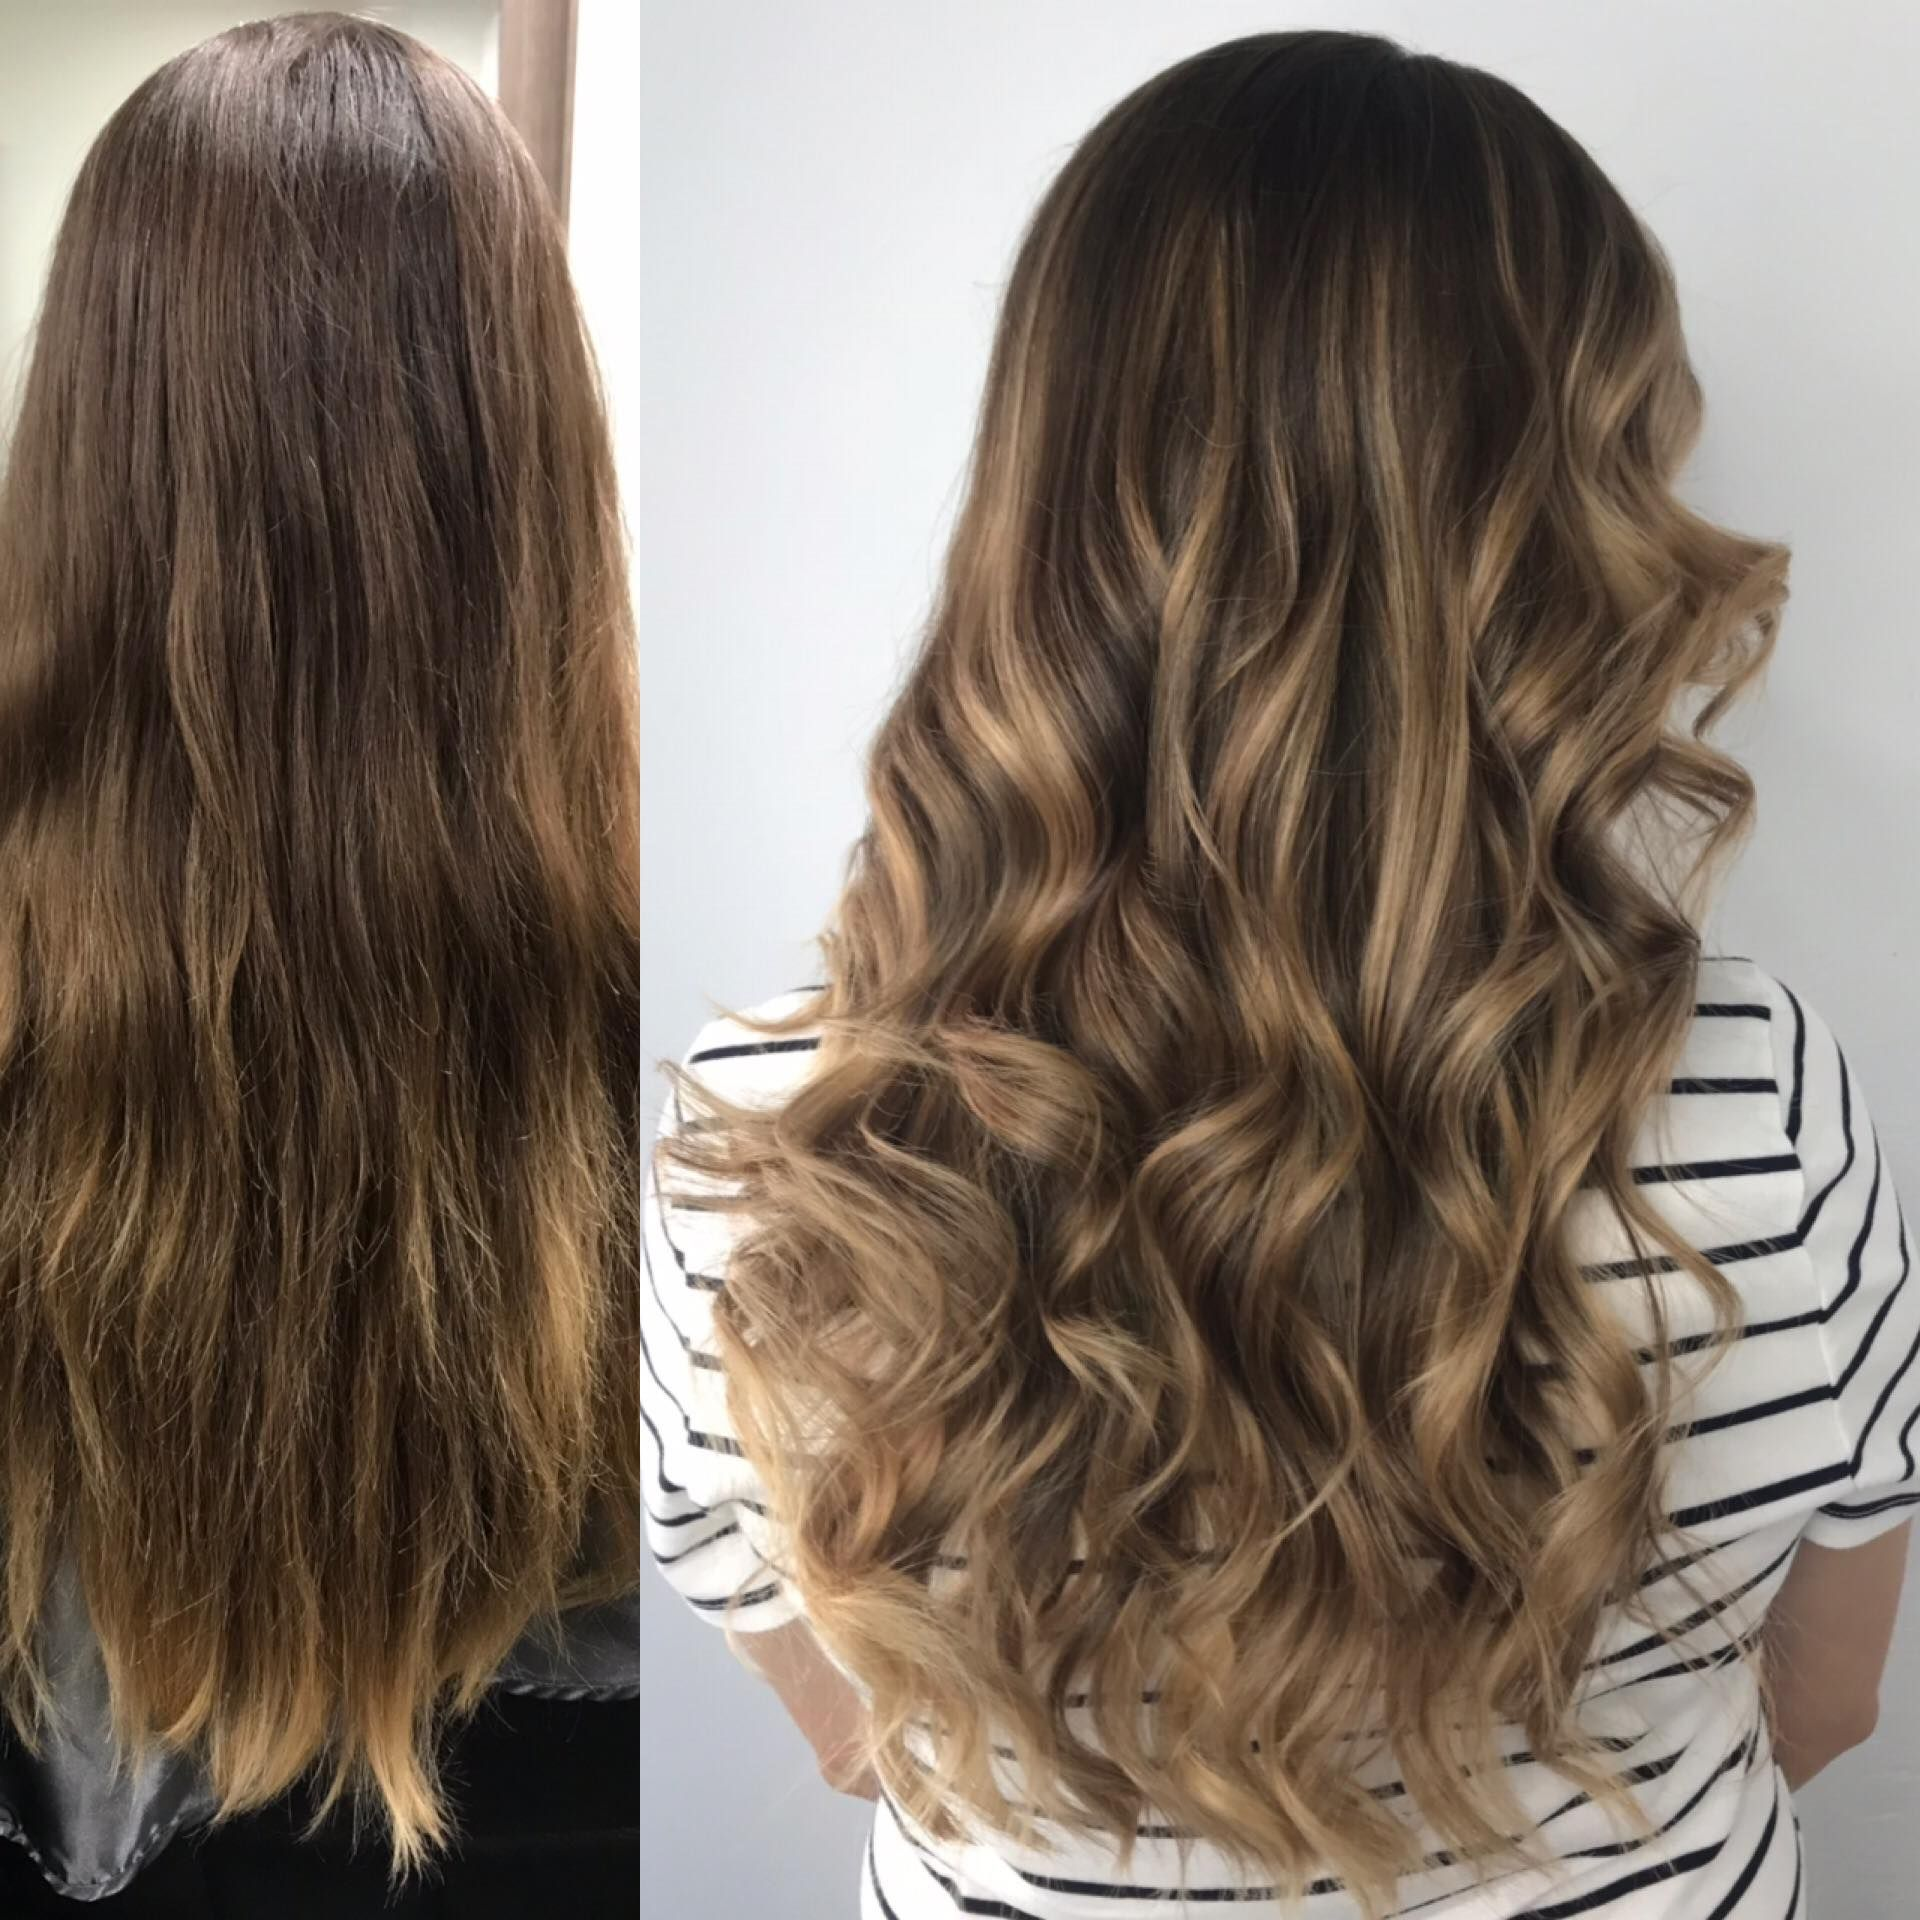 Before After Virgin Hair Transformation Light Brown Hair Blonde